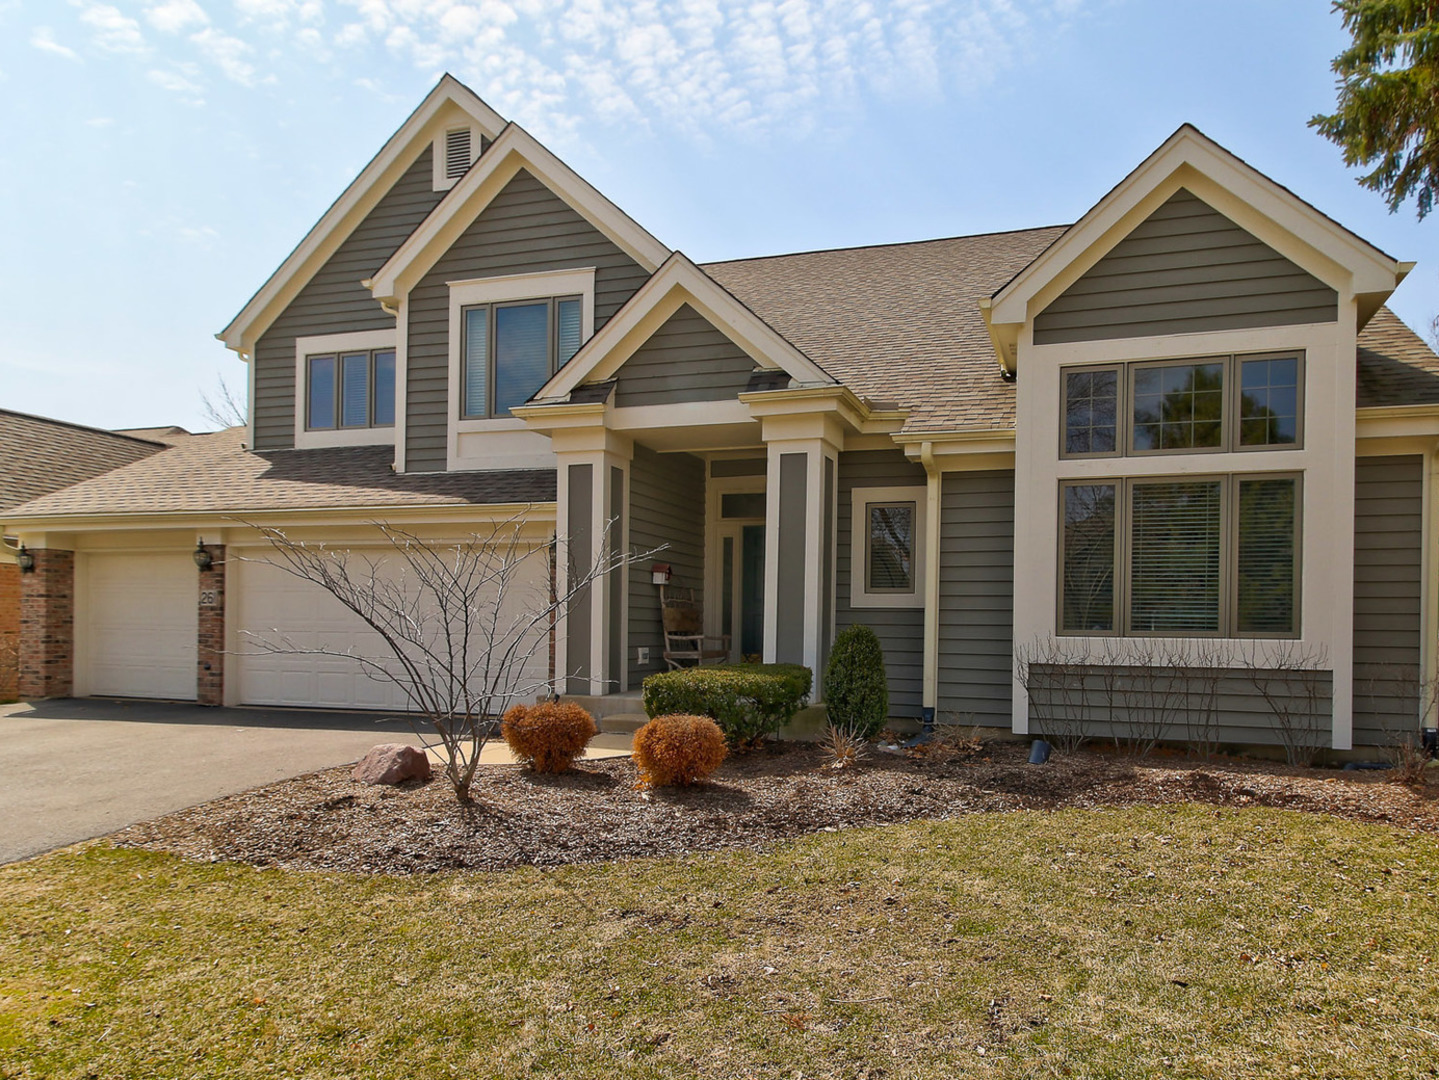 Property for sale at 261 Course Drive, Lake In The Hills,  IL 60156